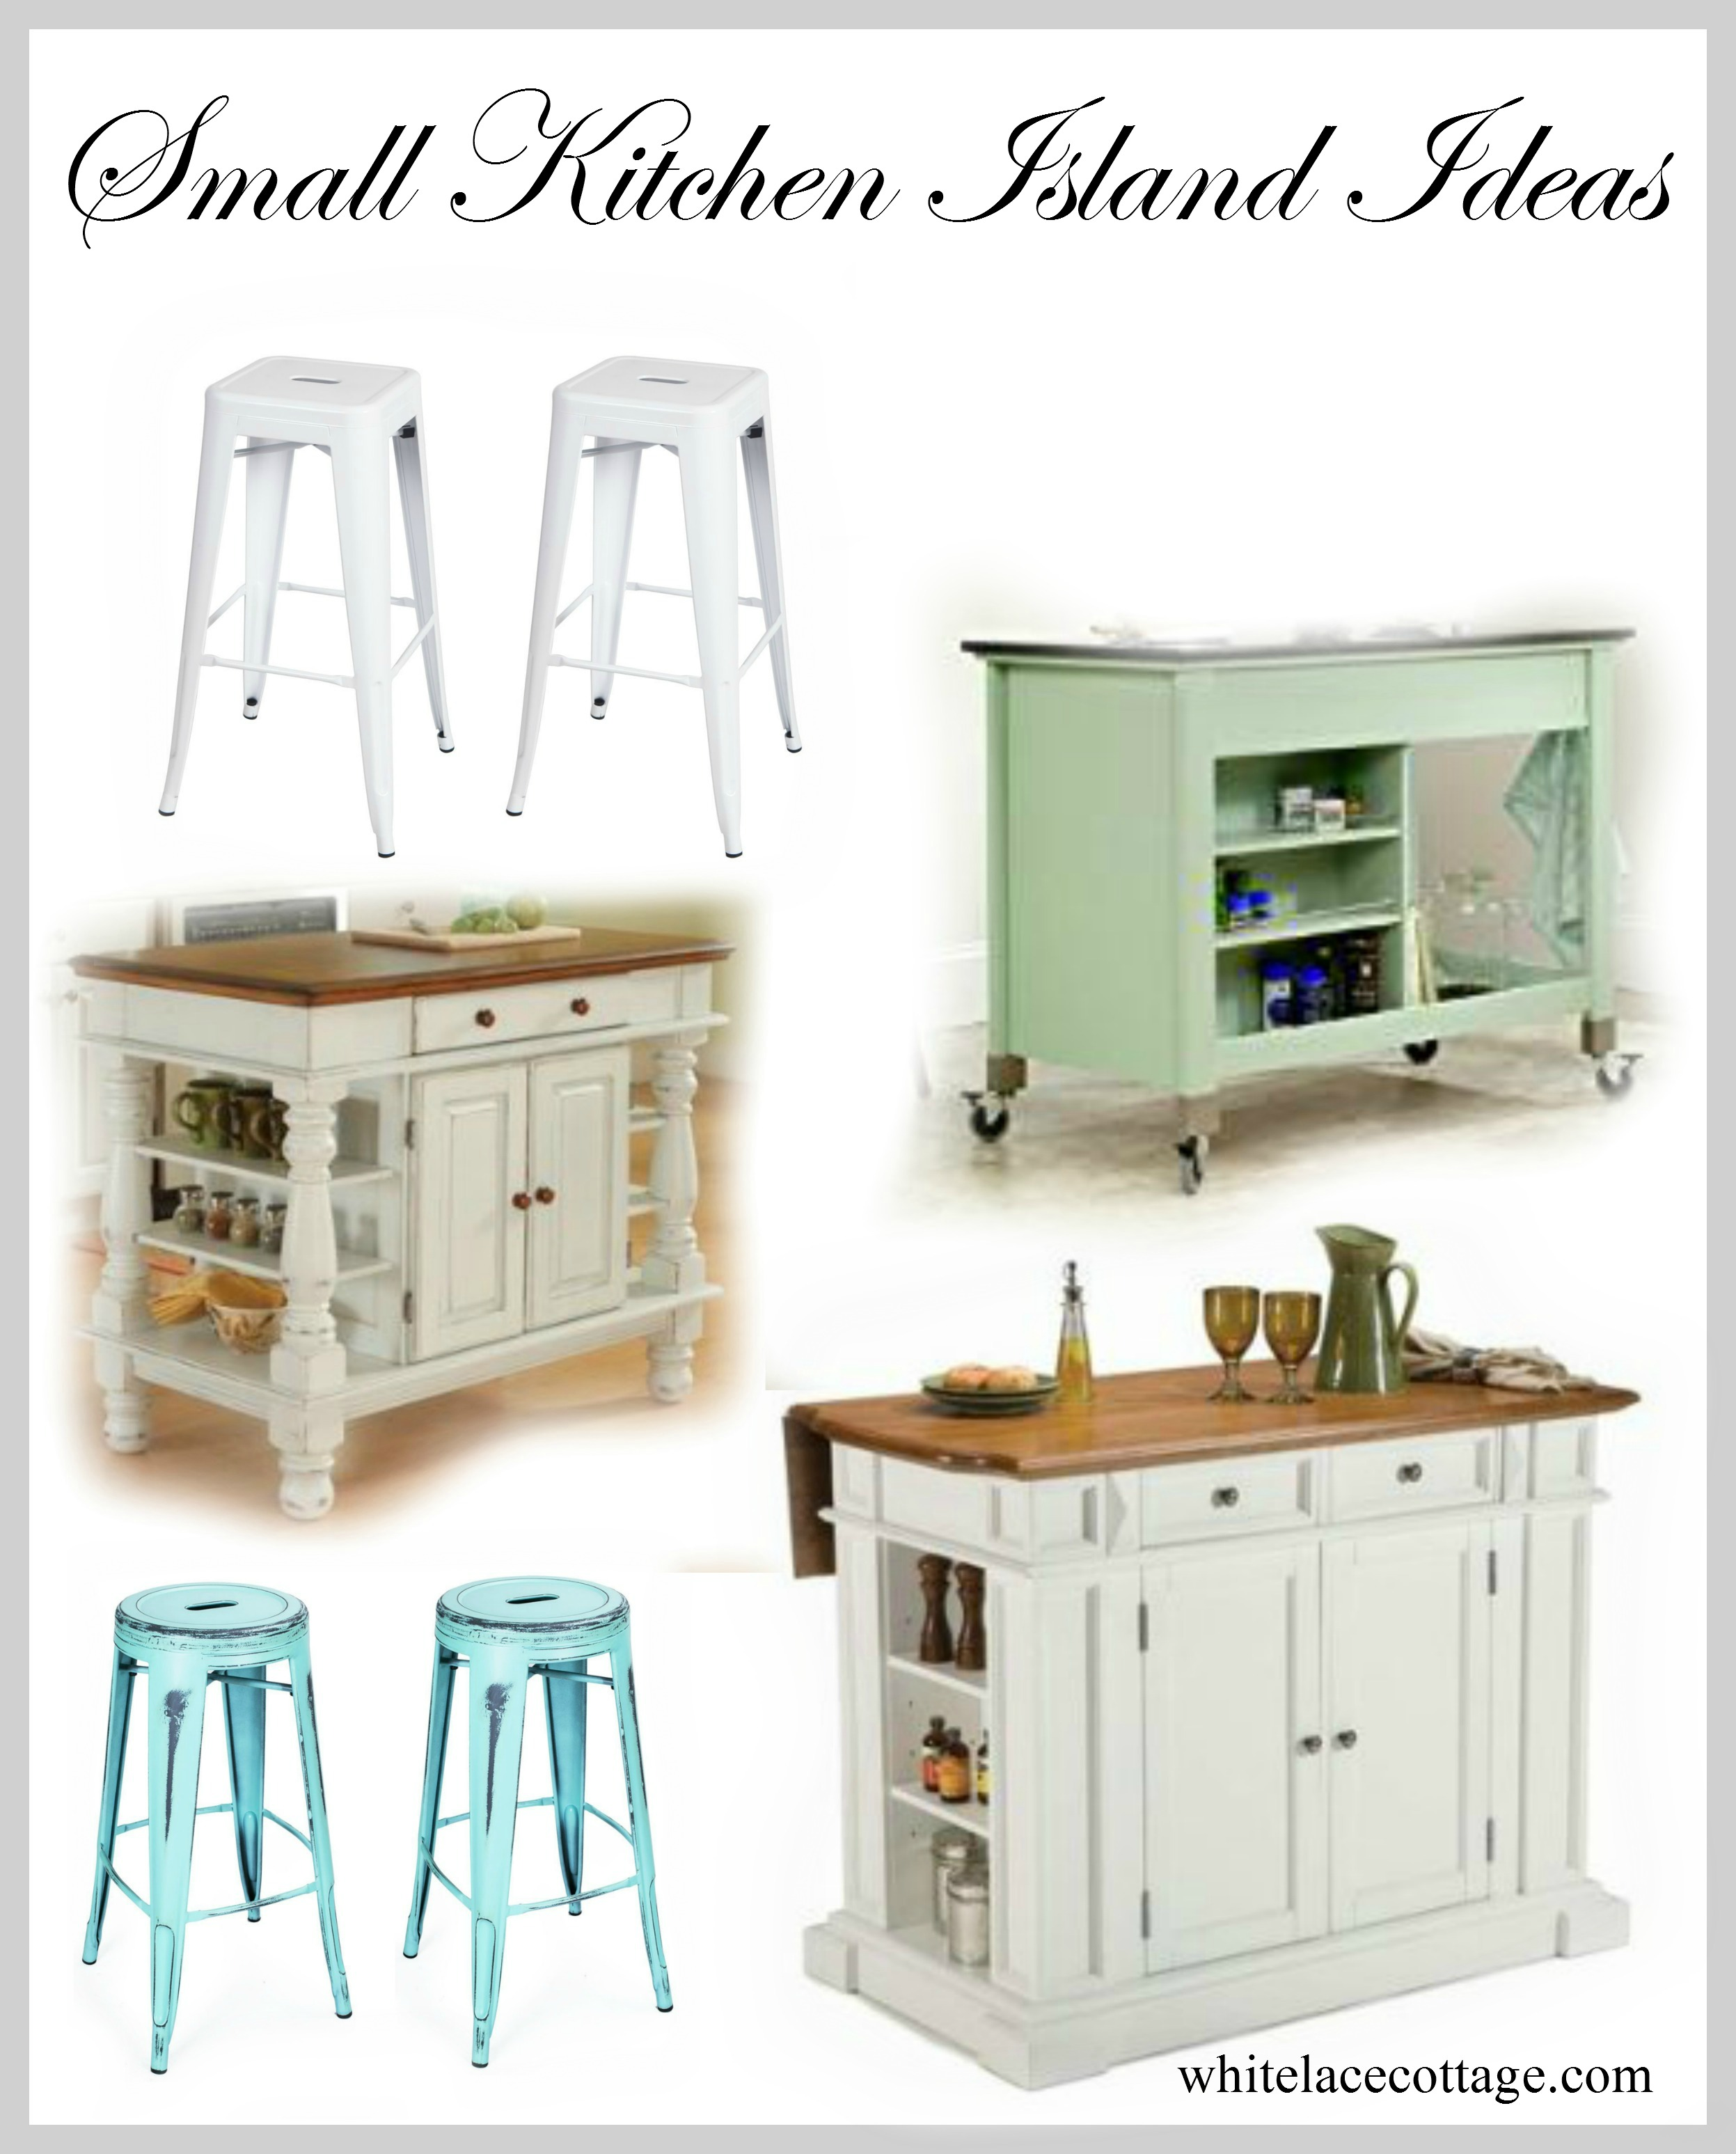 Small kitchen island ideas with seating white lace cottage for Kitchen ideas 2016 small